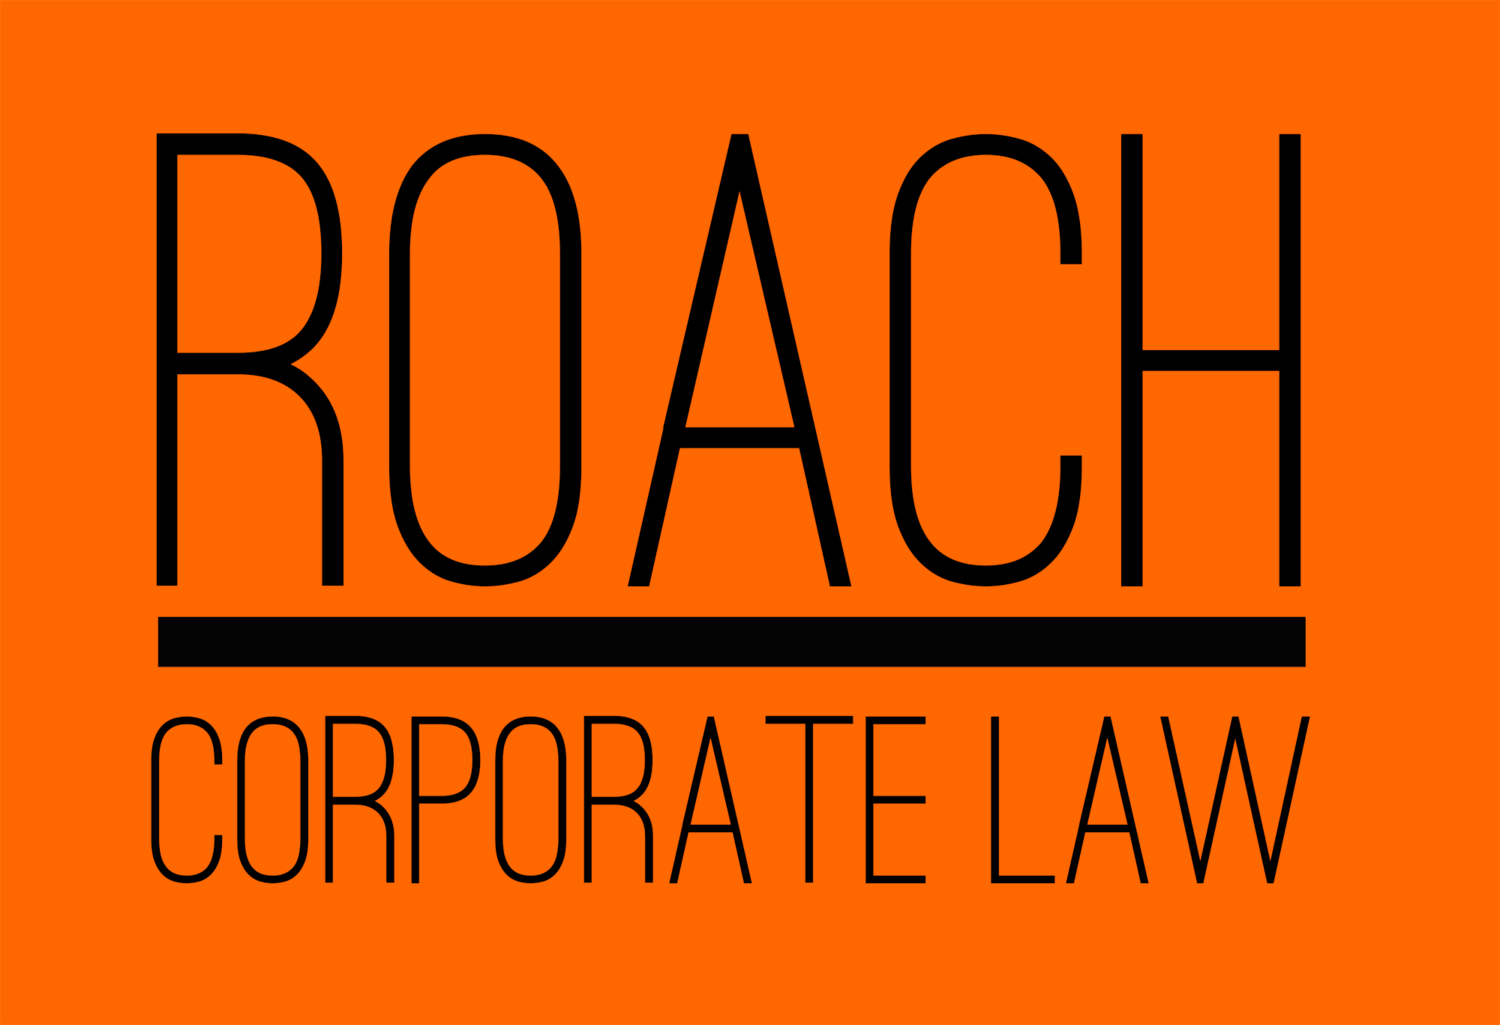 Roach Corporate Law